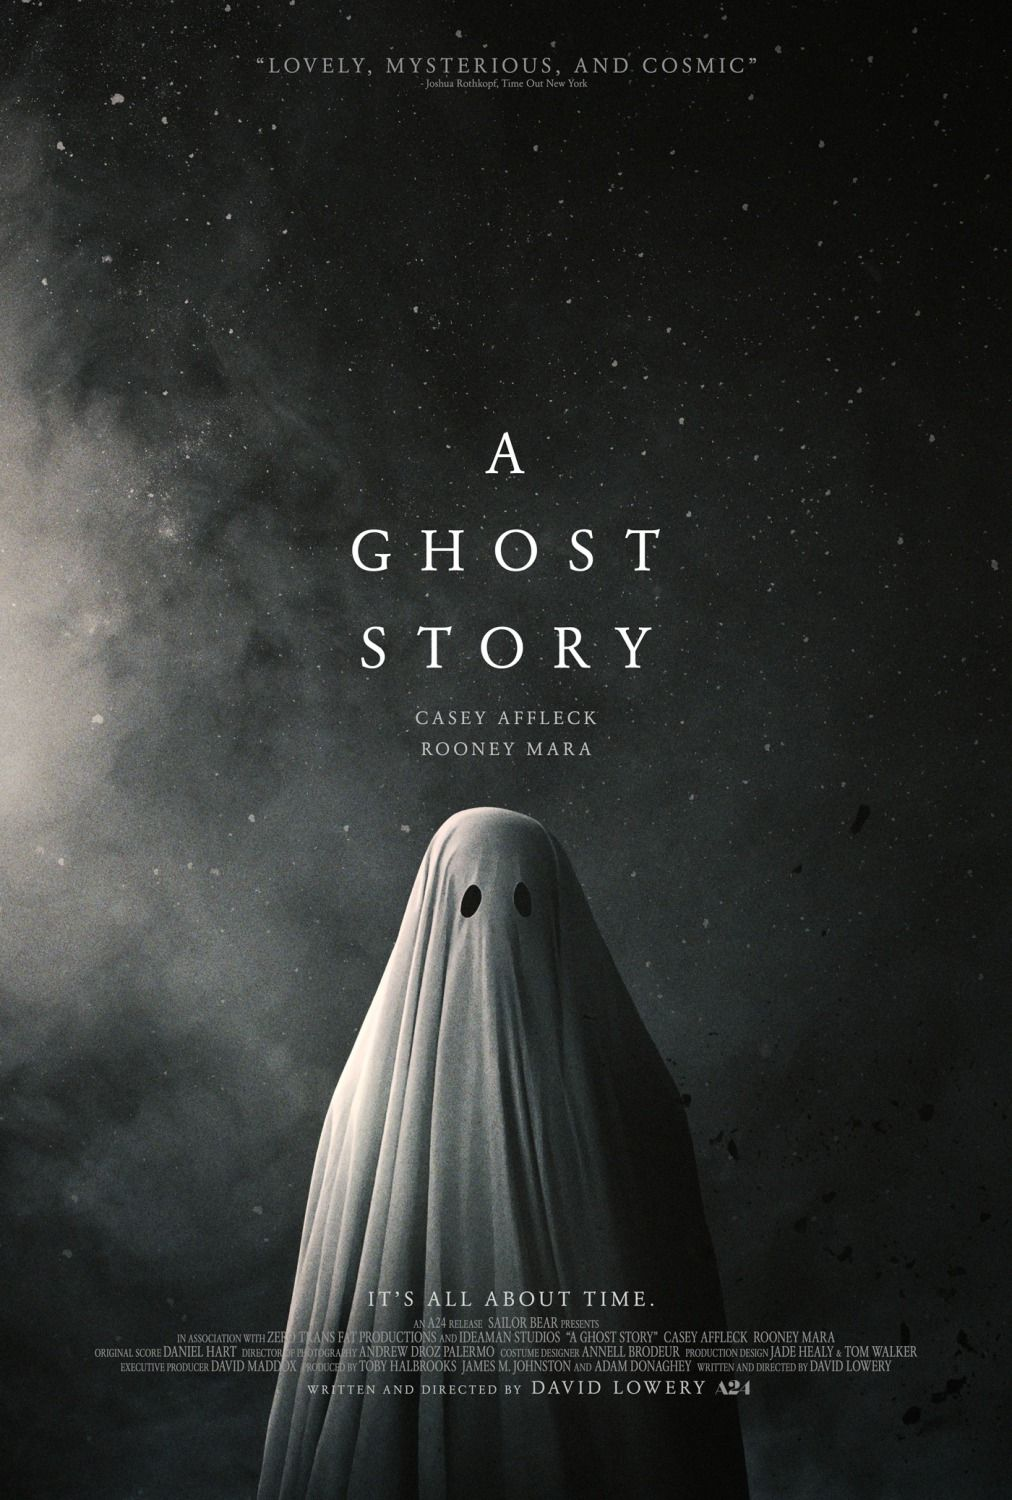 A Ghost Story Ghost Stories Full Movies Online Free Casey Affleck